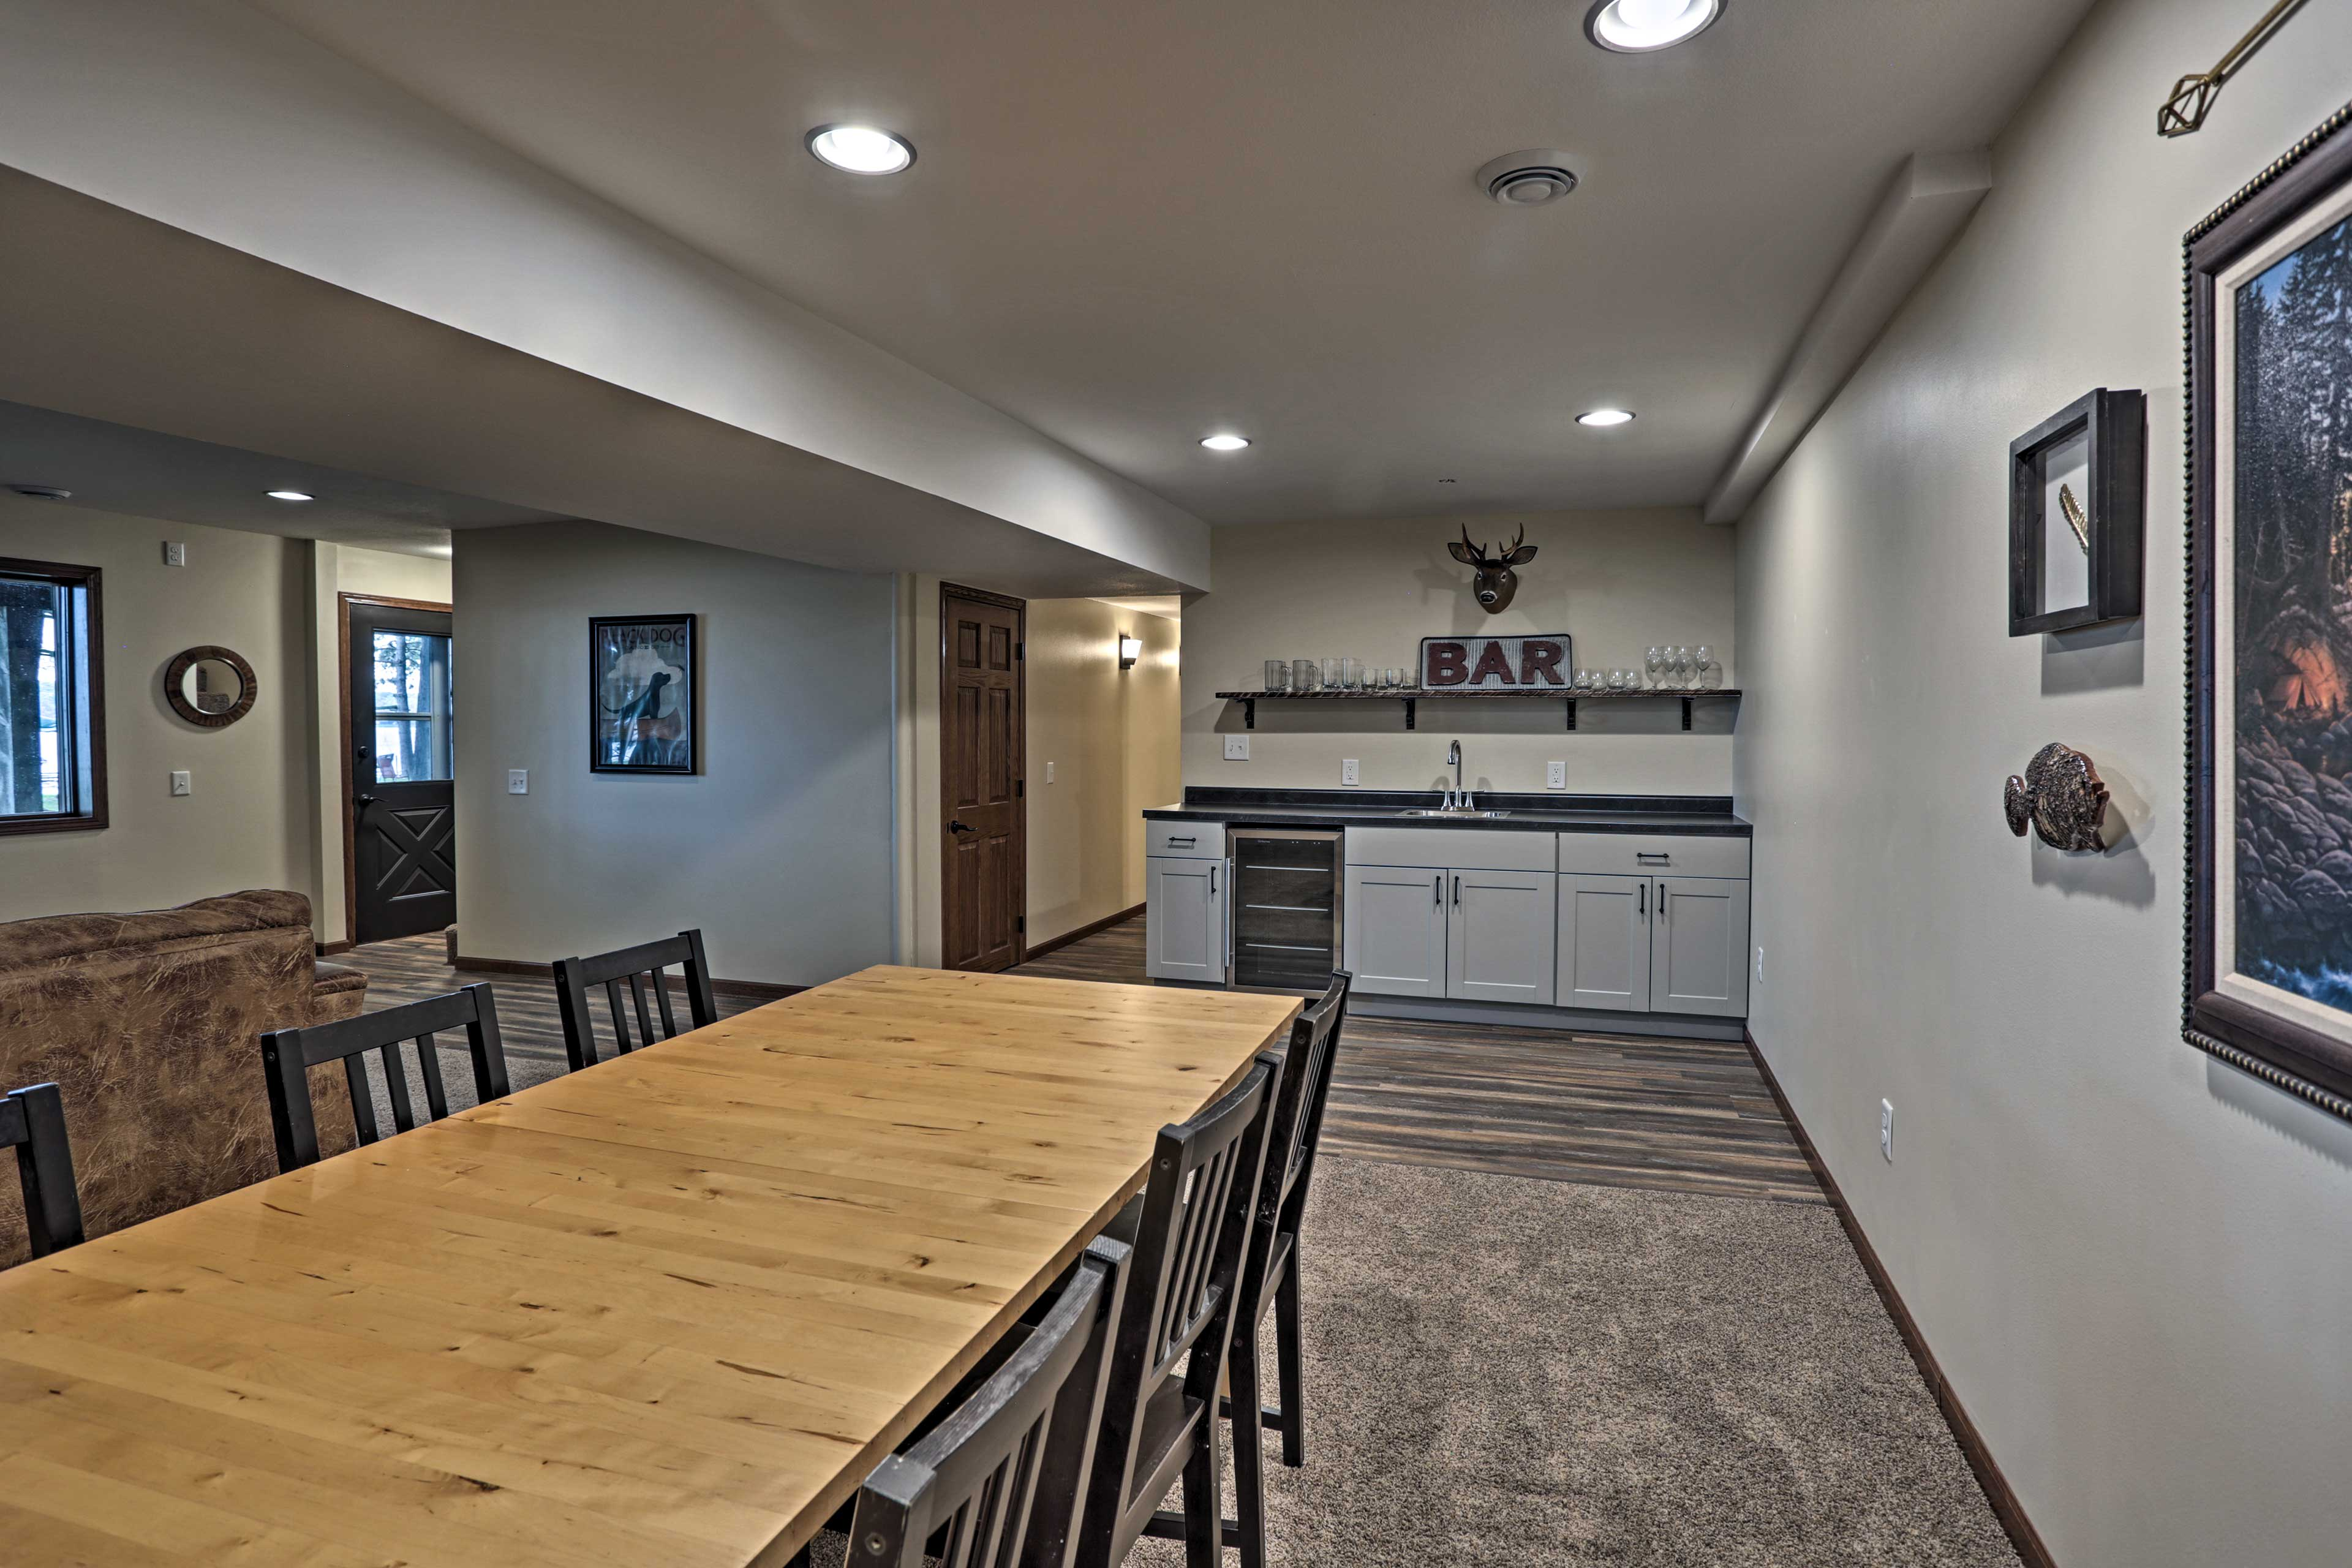 Downstairs, a massive dining room table adds more seating.